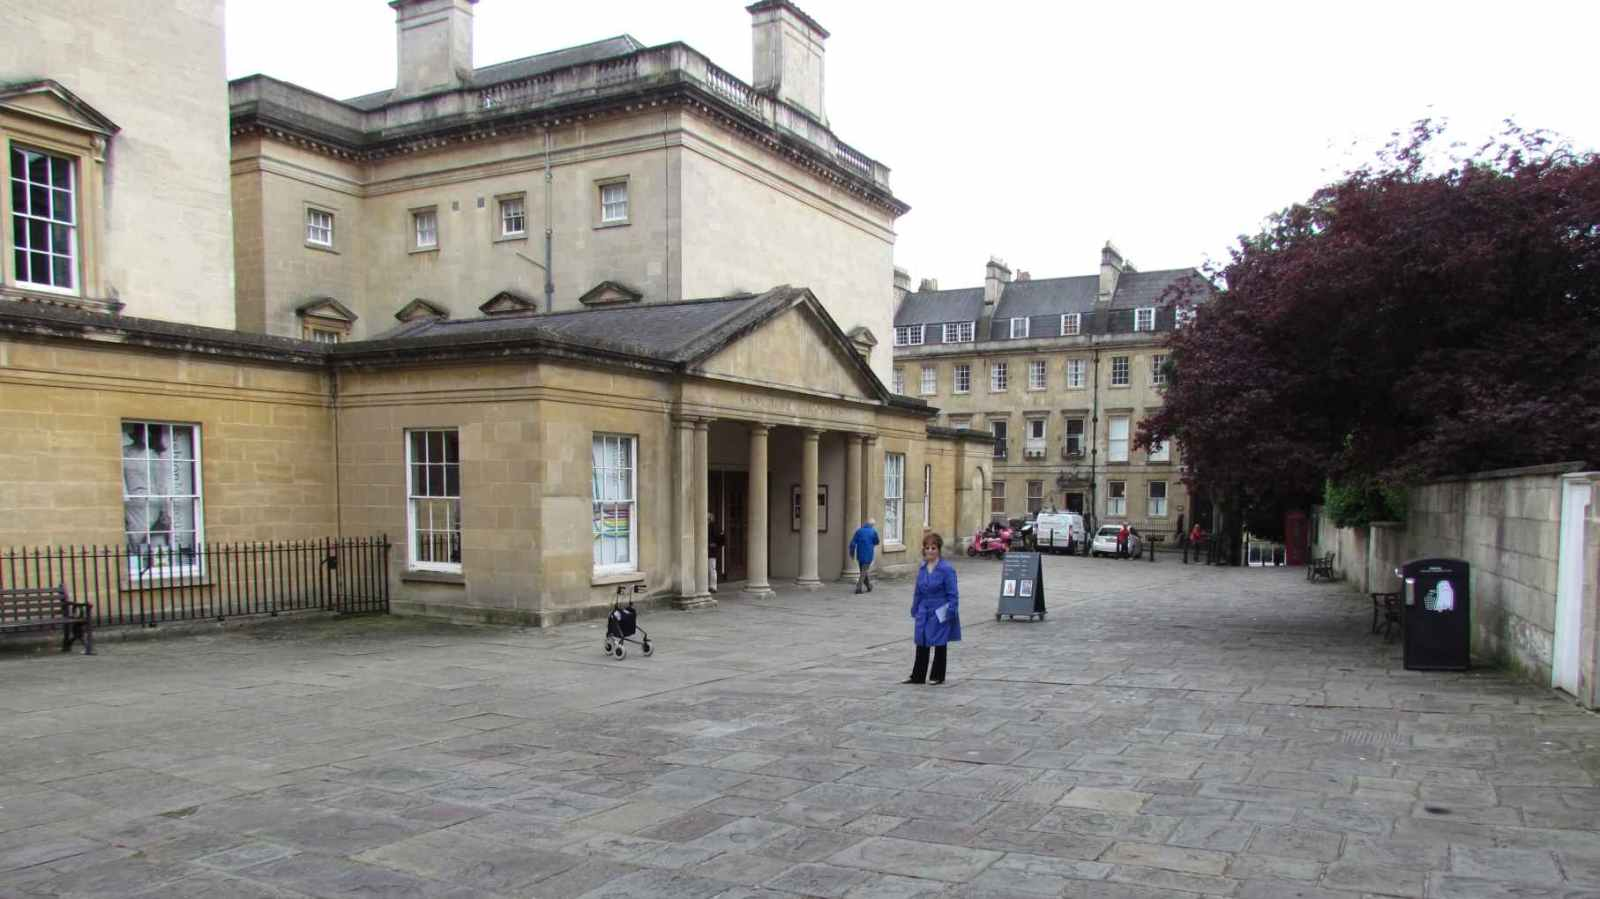 The Assembly Rooms: Bath